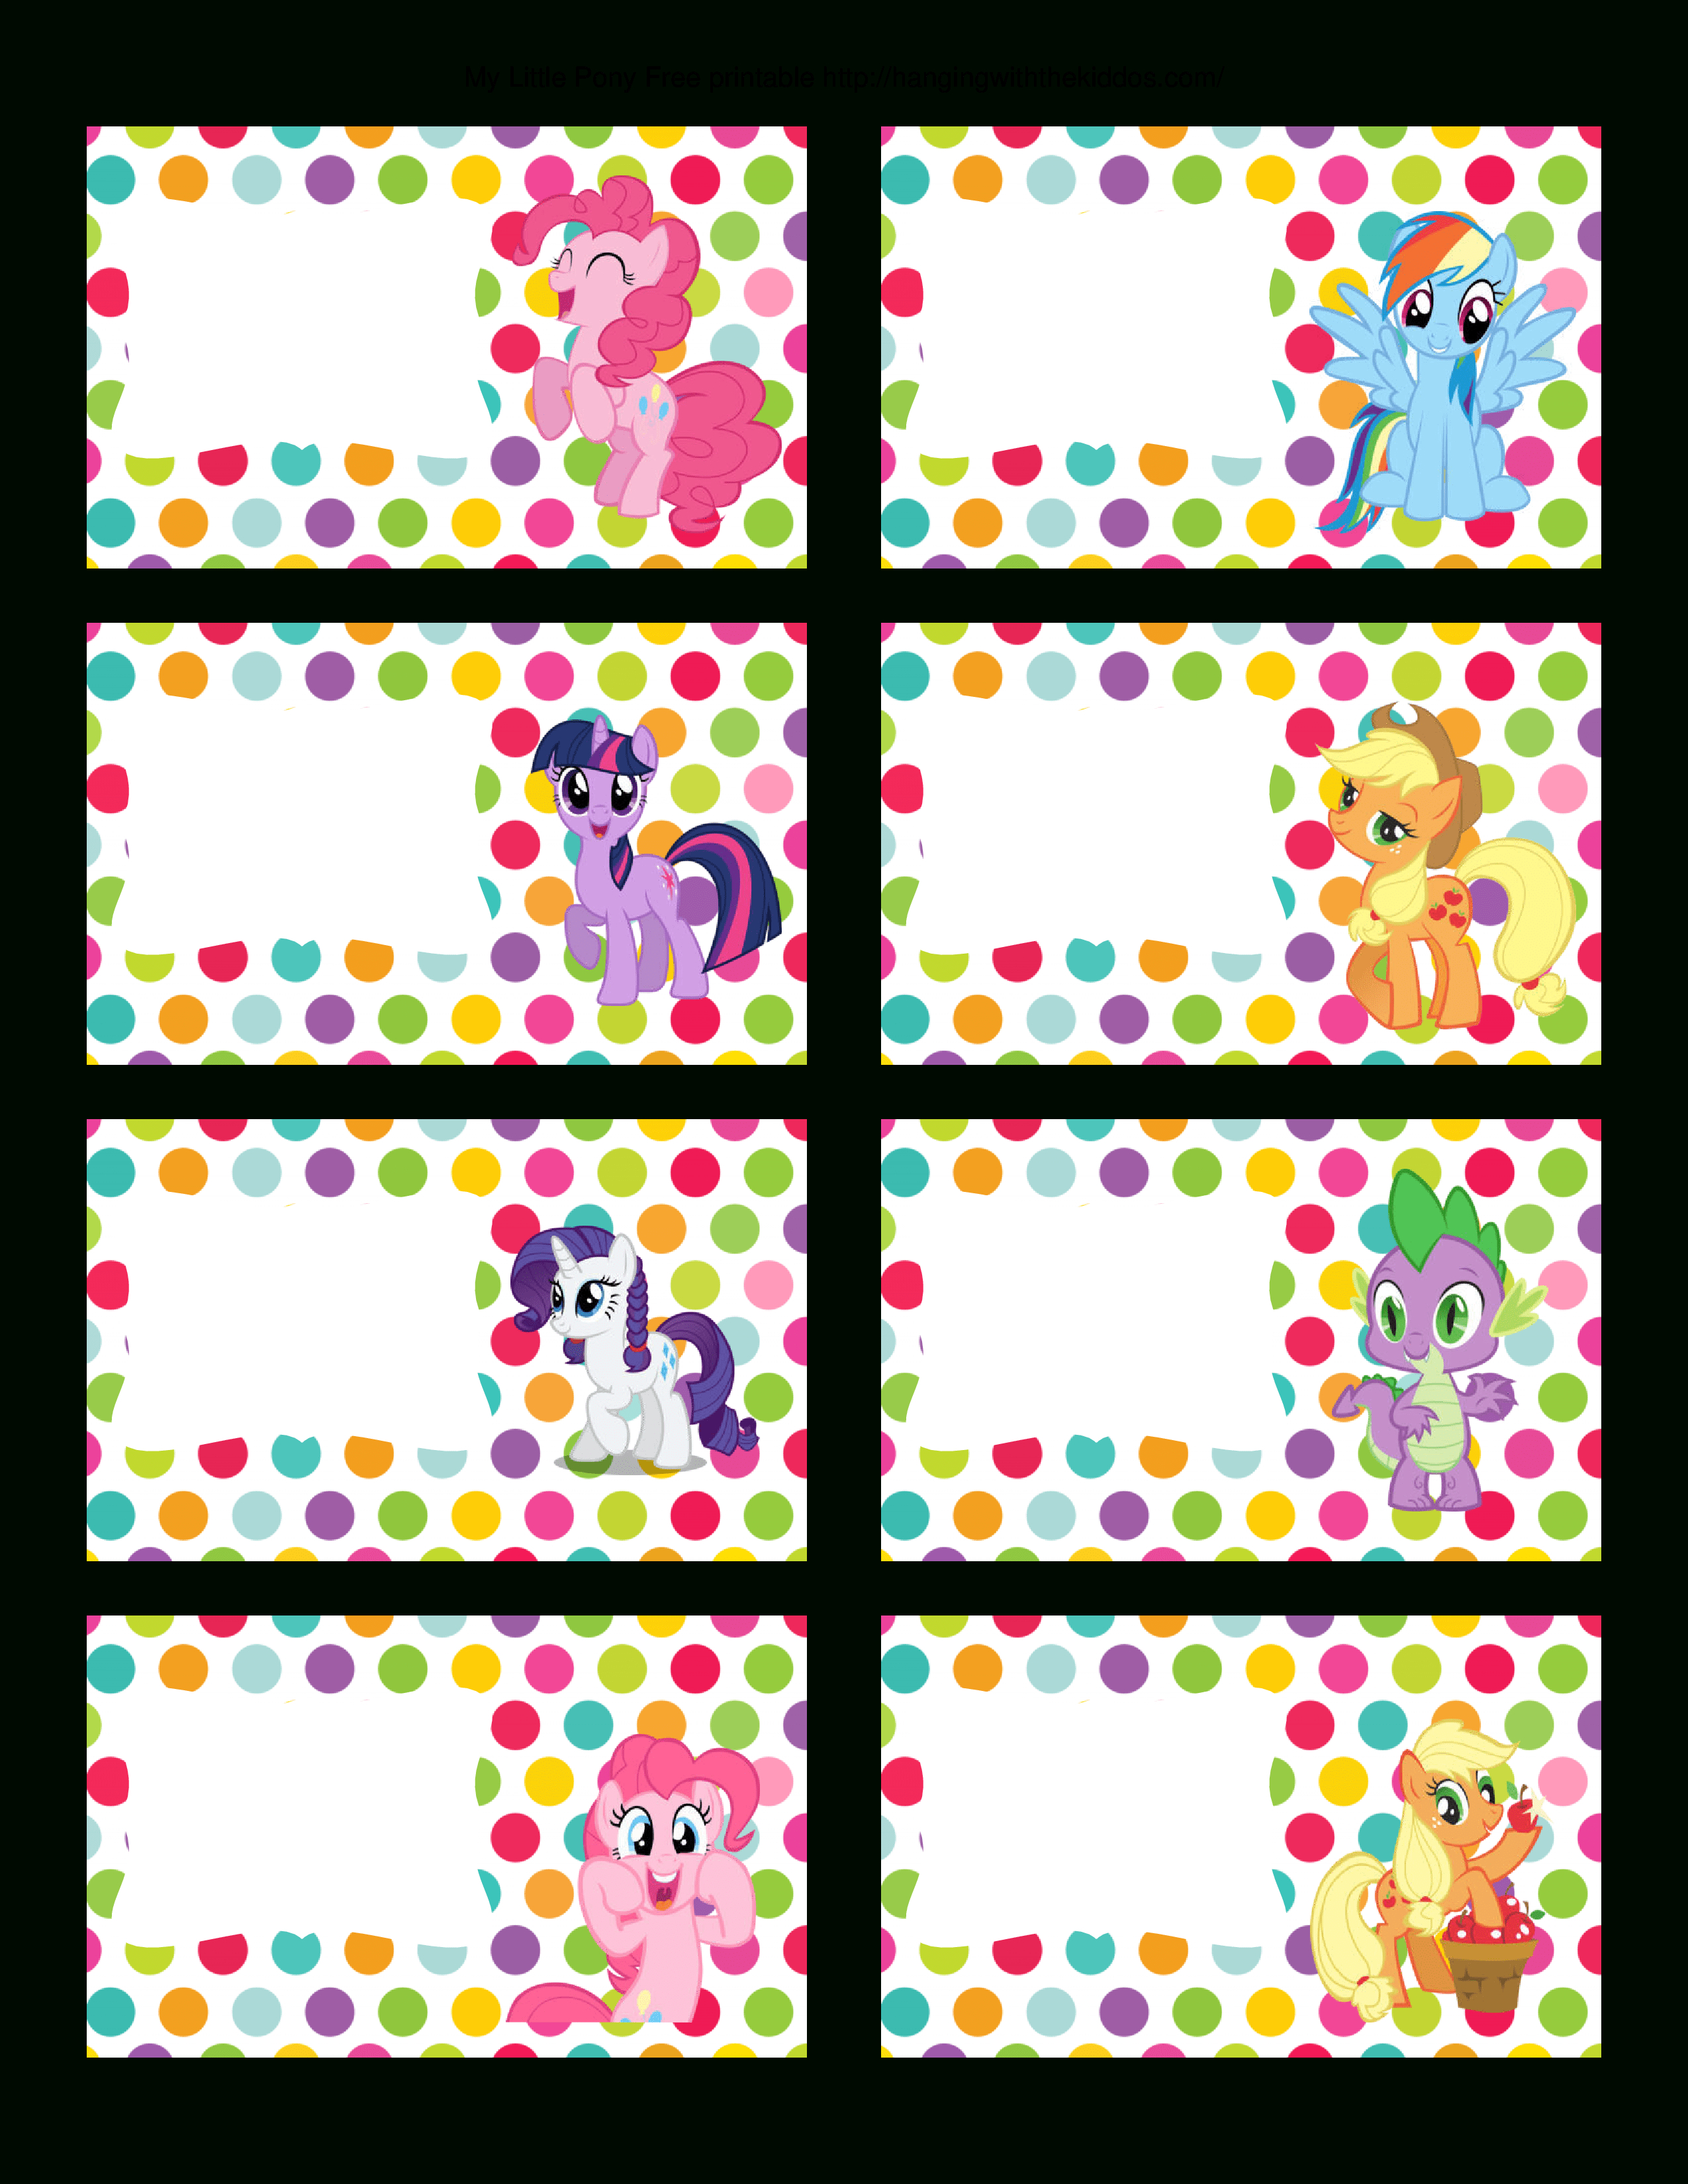 Super Cute Collection Of Free My Little Pony Party Printables. This - Free My Little Pony Party Printables